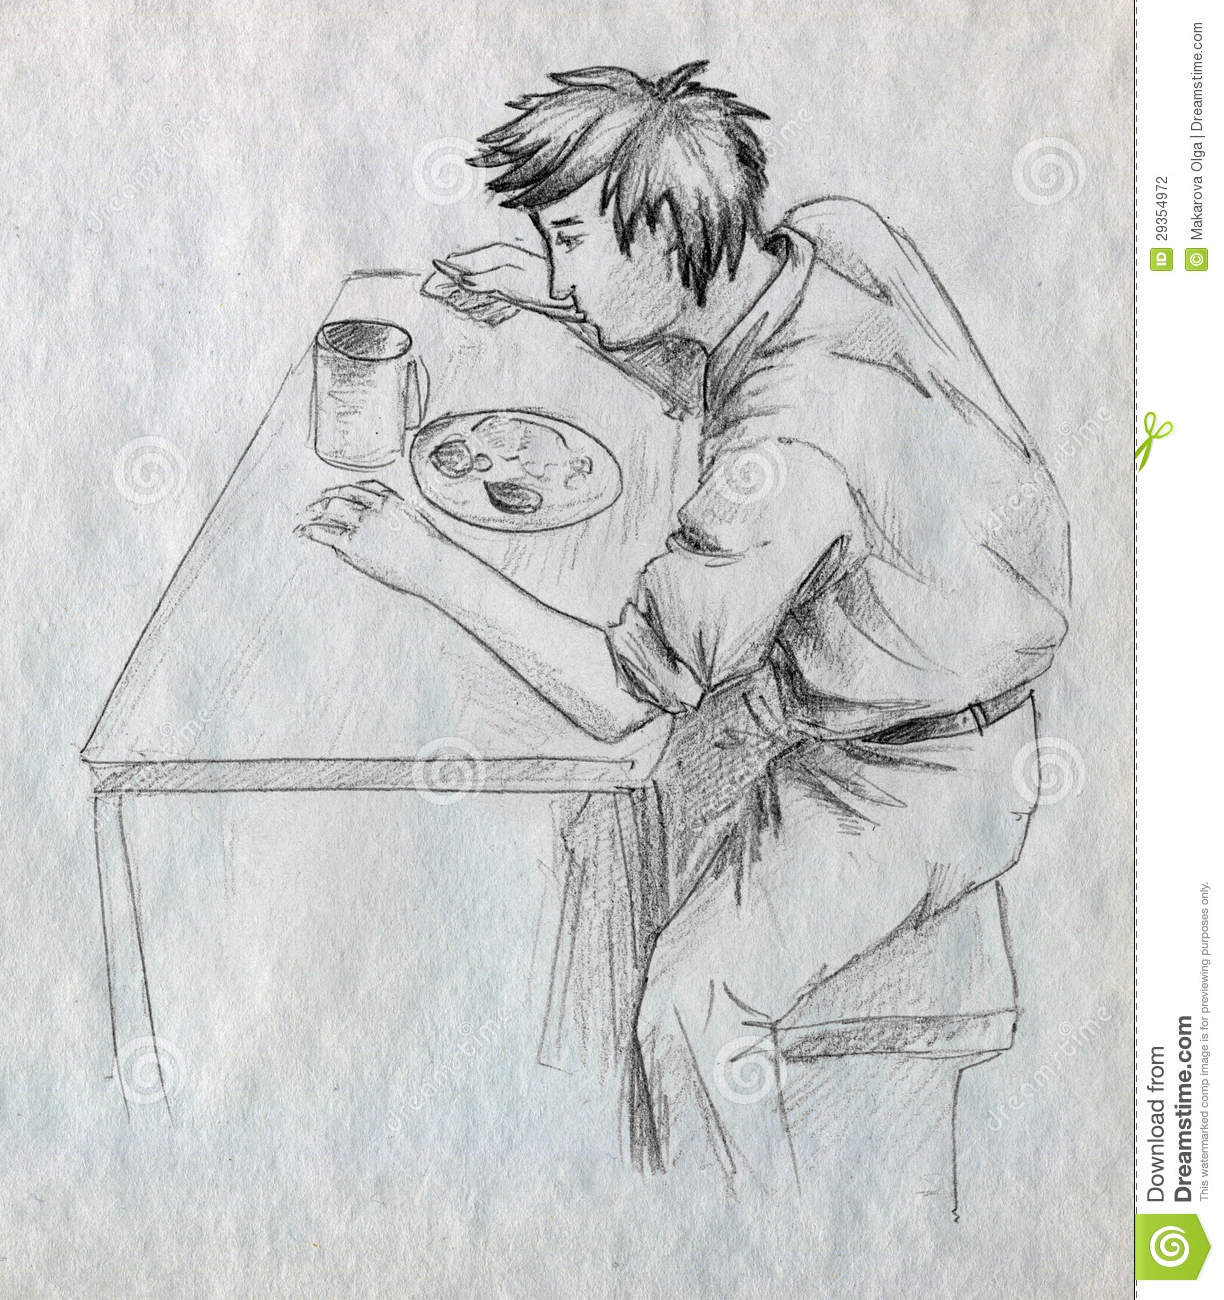 Pencil drawn sketch of a young man eating his meal all alone